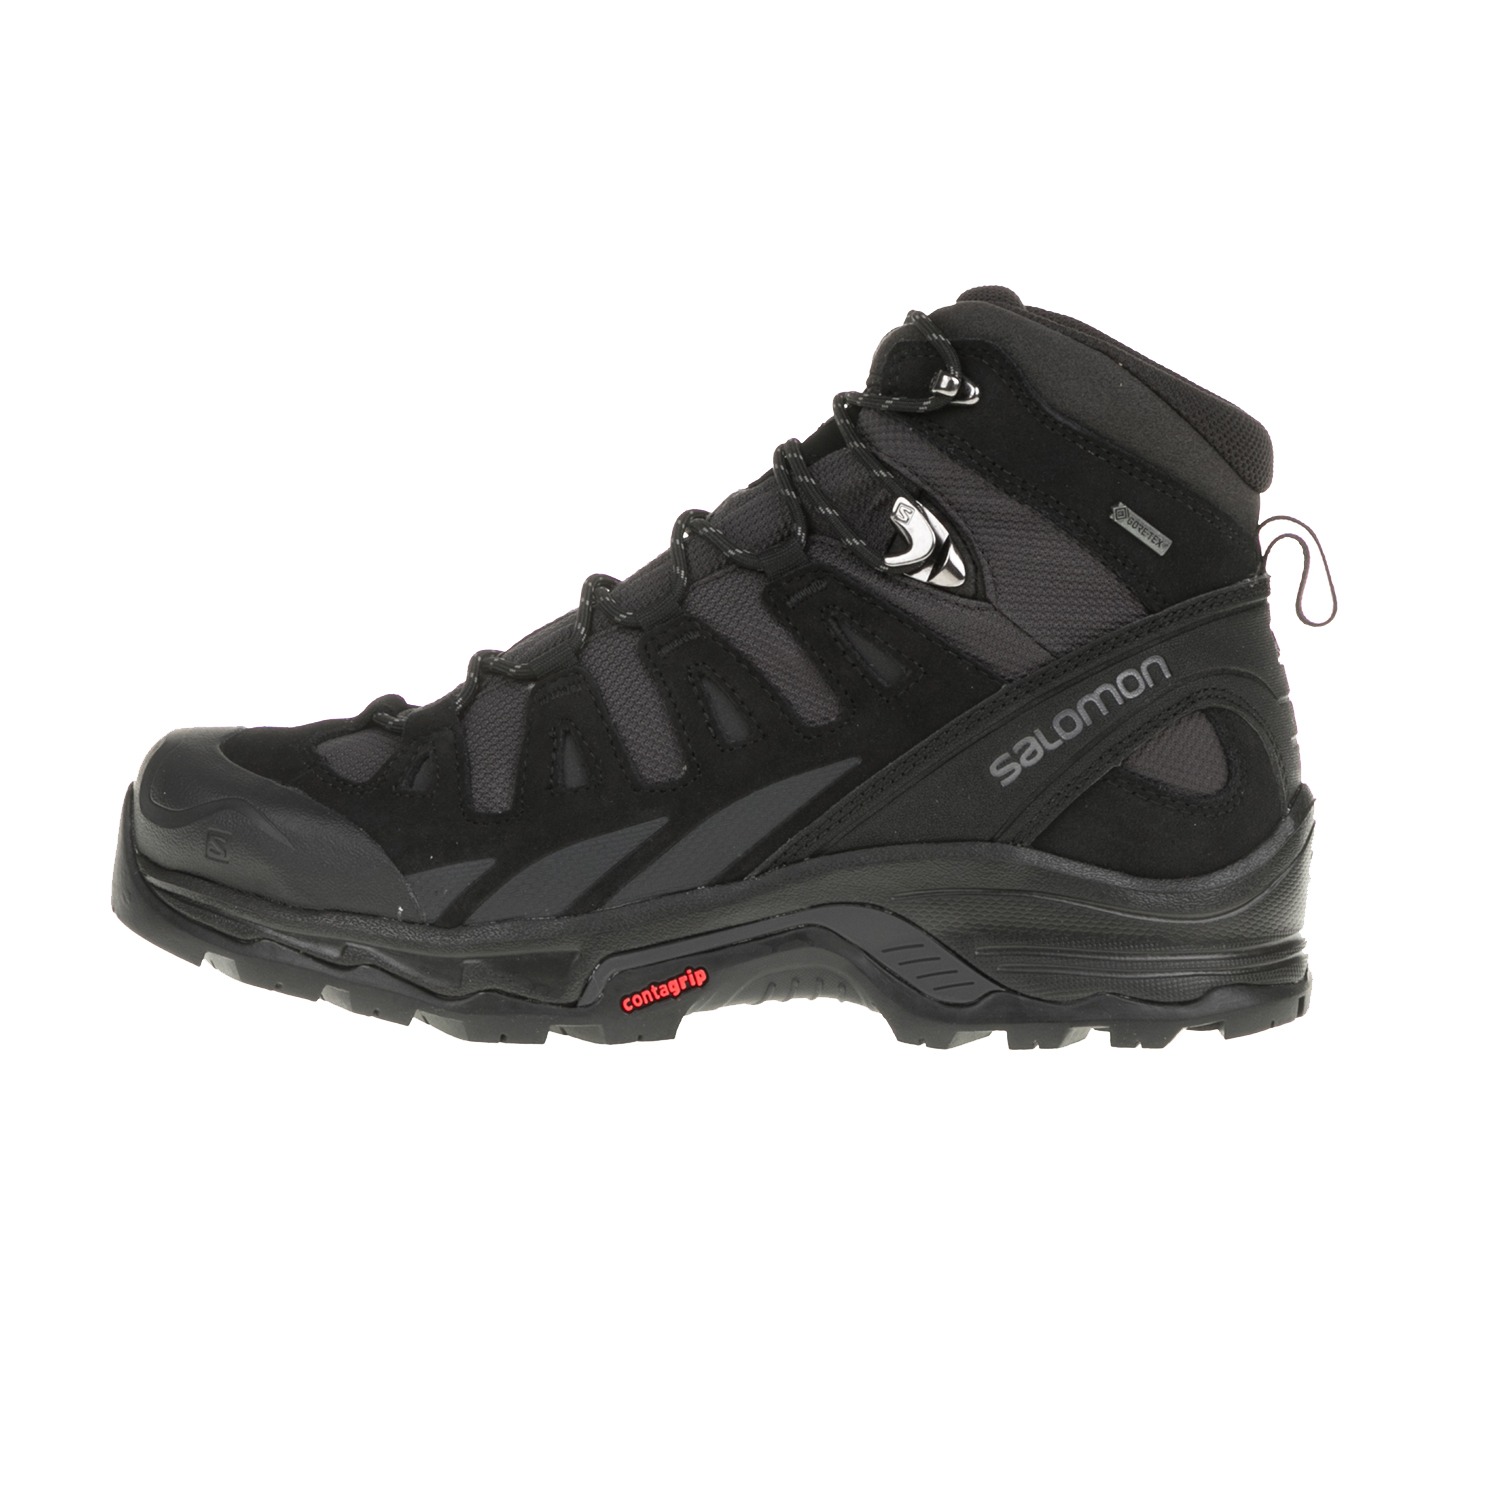 SALOMON - Ανδρικά μποτάκια BACKPACKING SHOES QUEST PRIME ανθρακί-μαύρα ανδρικά παπούτσια μπότες μποτάκια μποτάκια